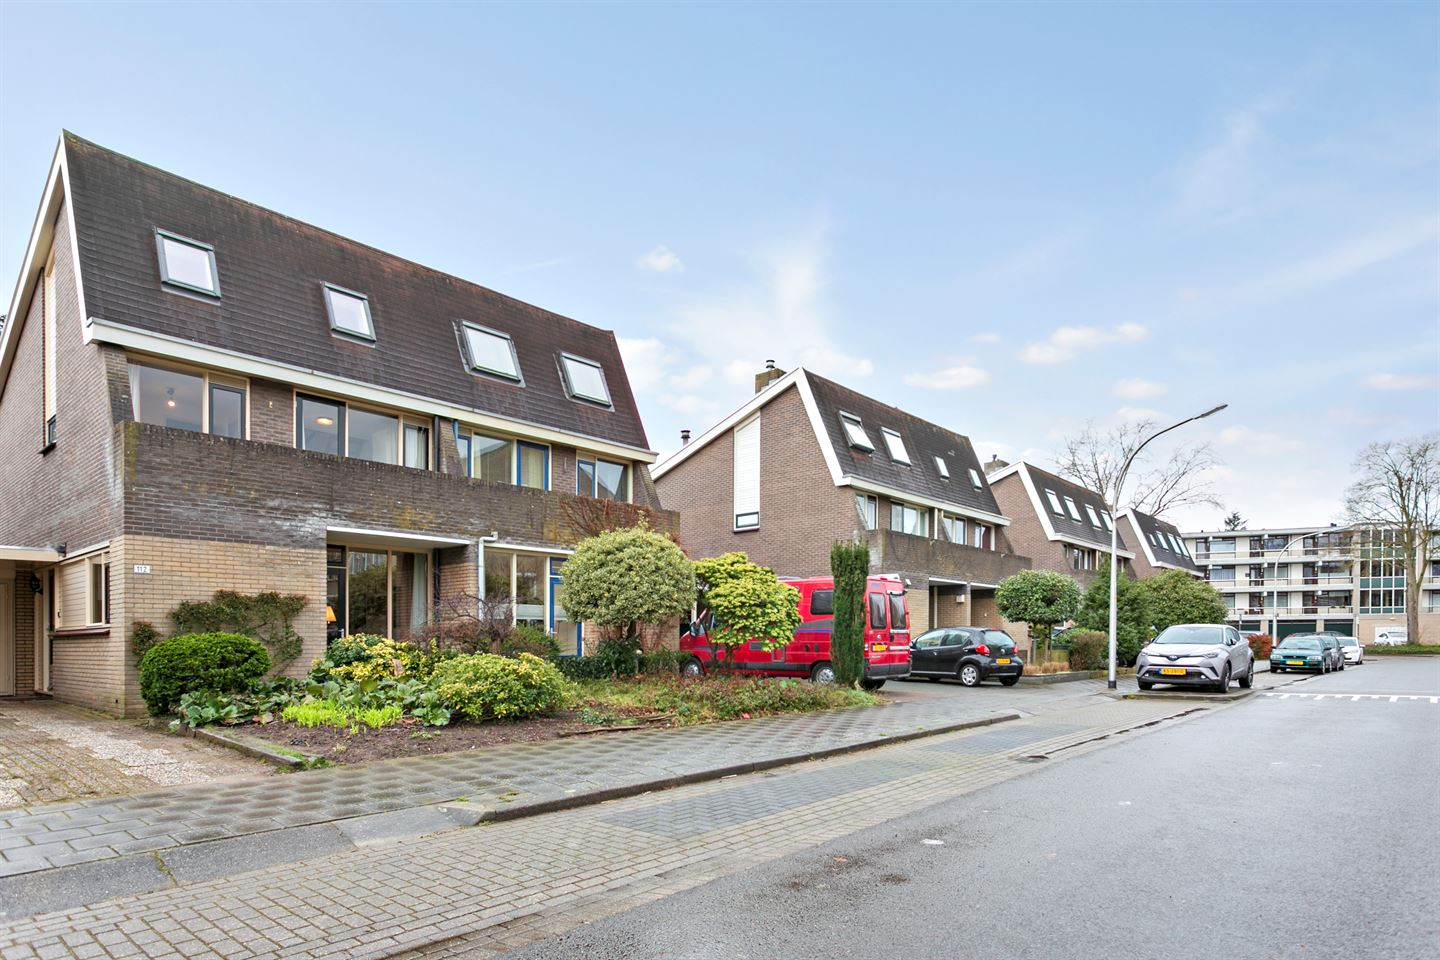 View photo 2 of Boutensgaarde 112